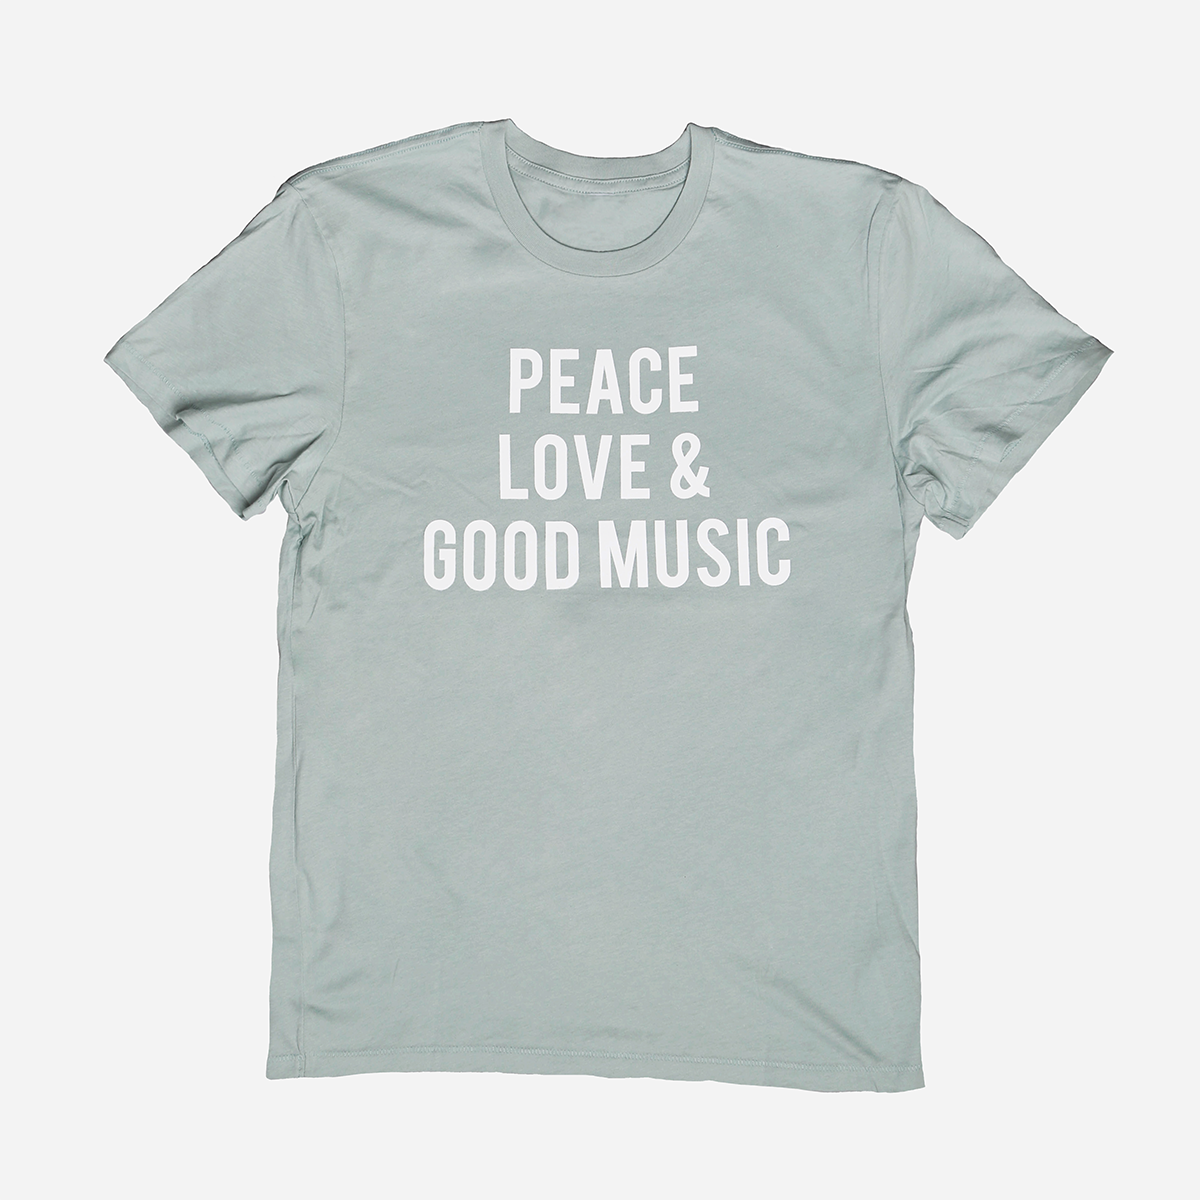 Peace, Love & Good Music Shirt